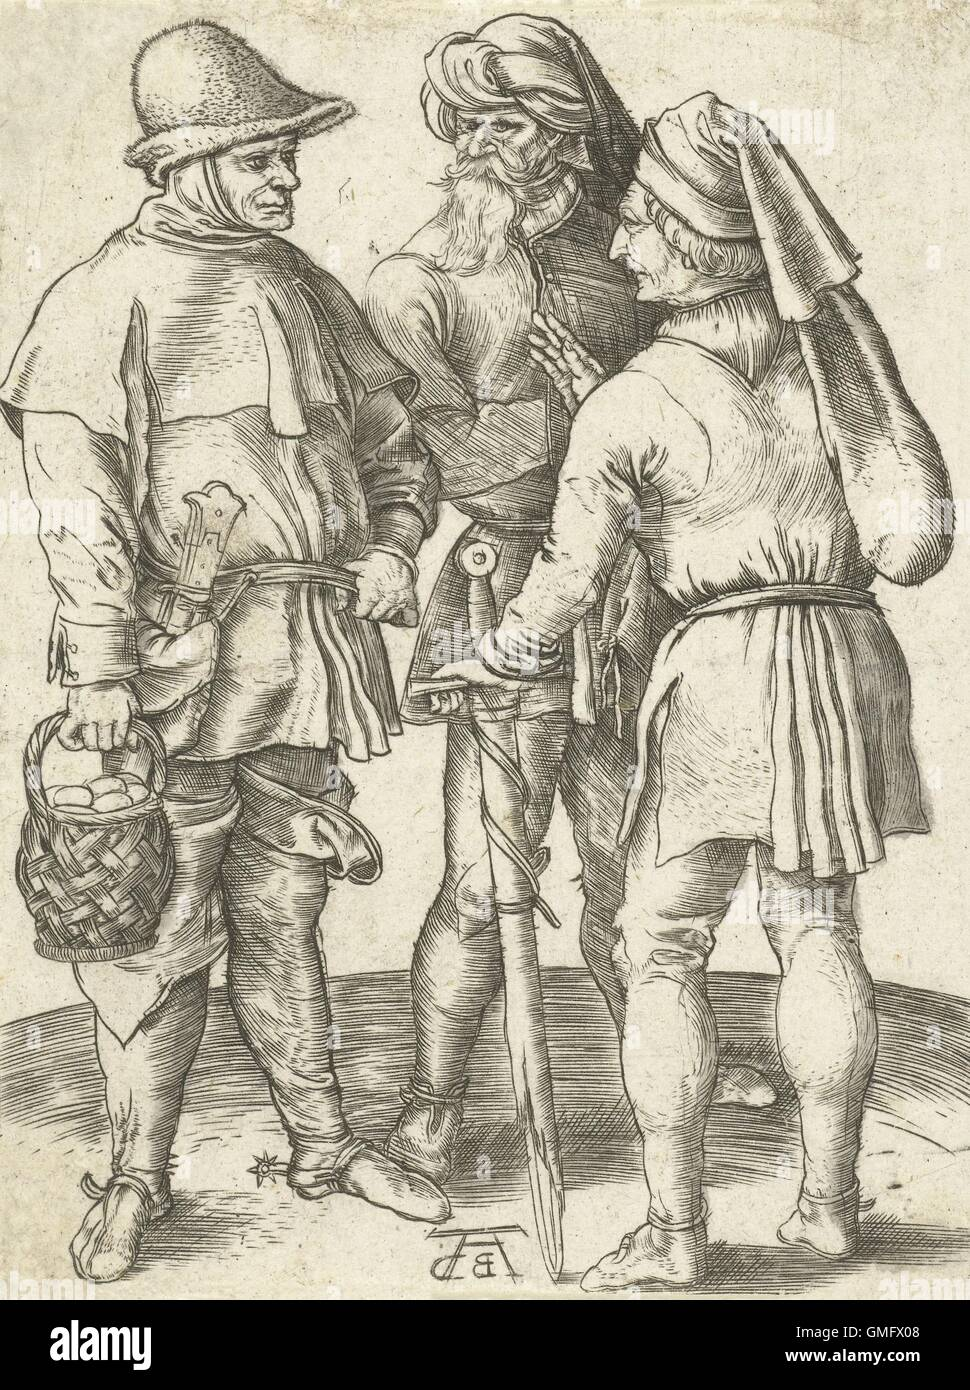 Three Farmers in Conversation, by Albrecht Durer, German print, engraving. 1567 copy of the Durer original by Abraham - Stock Image